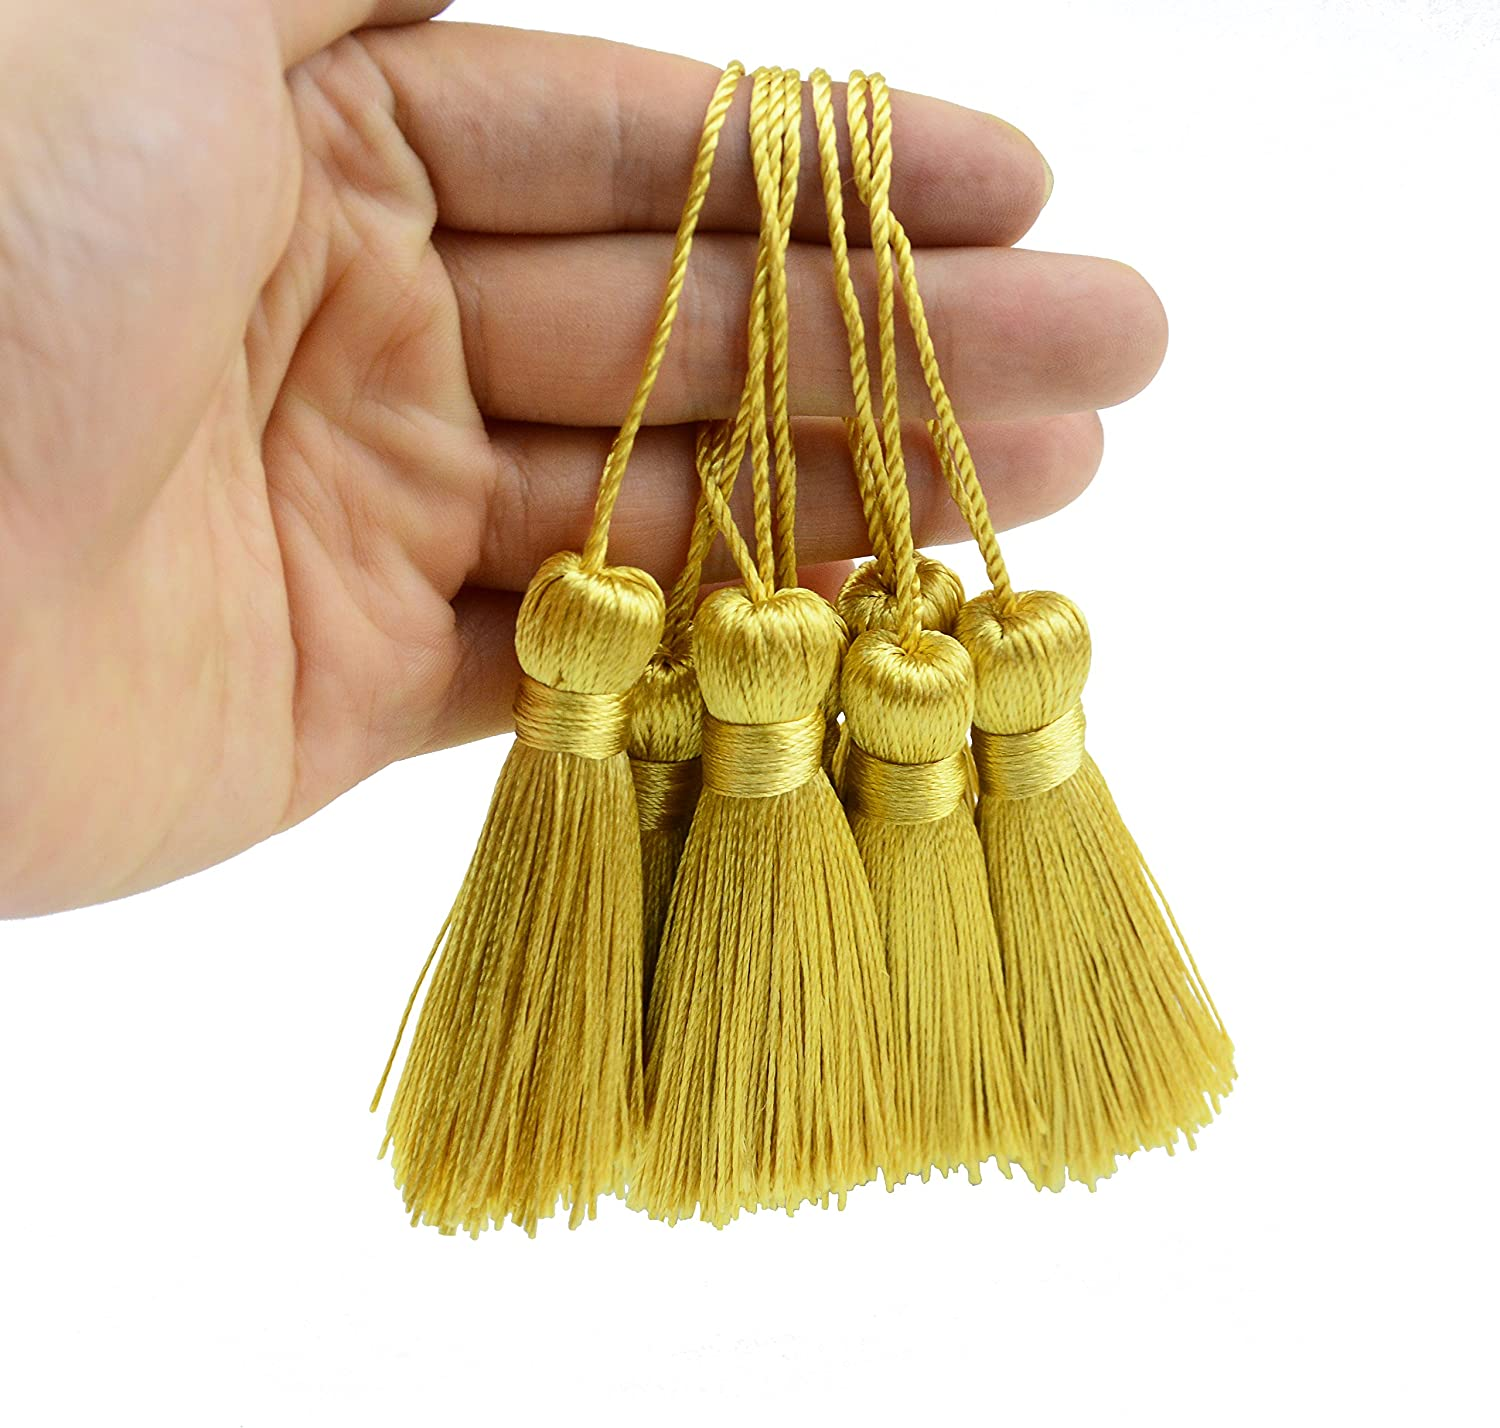 White Souvenir Bookmarks DIY Craft Accessory,Tags Makhry 20pcs 4.3 Inch Handmade Silky Floss Mini Tiny Craft Tassels with 2-Inch Cord Loop and Small Chinese Knot for Earrings